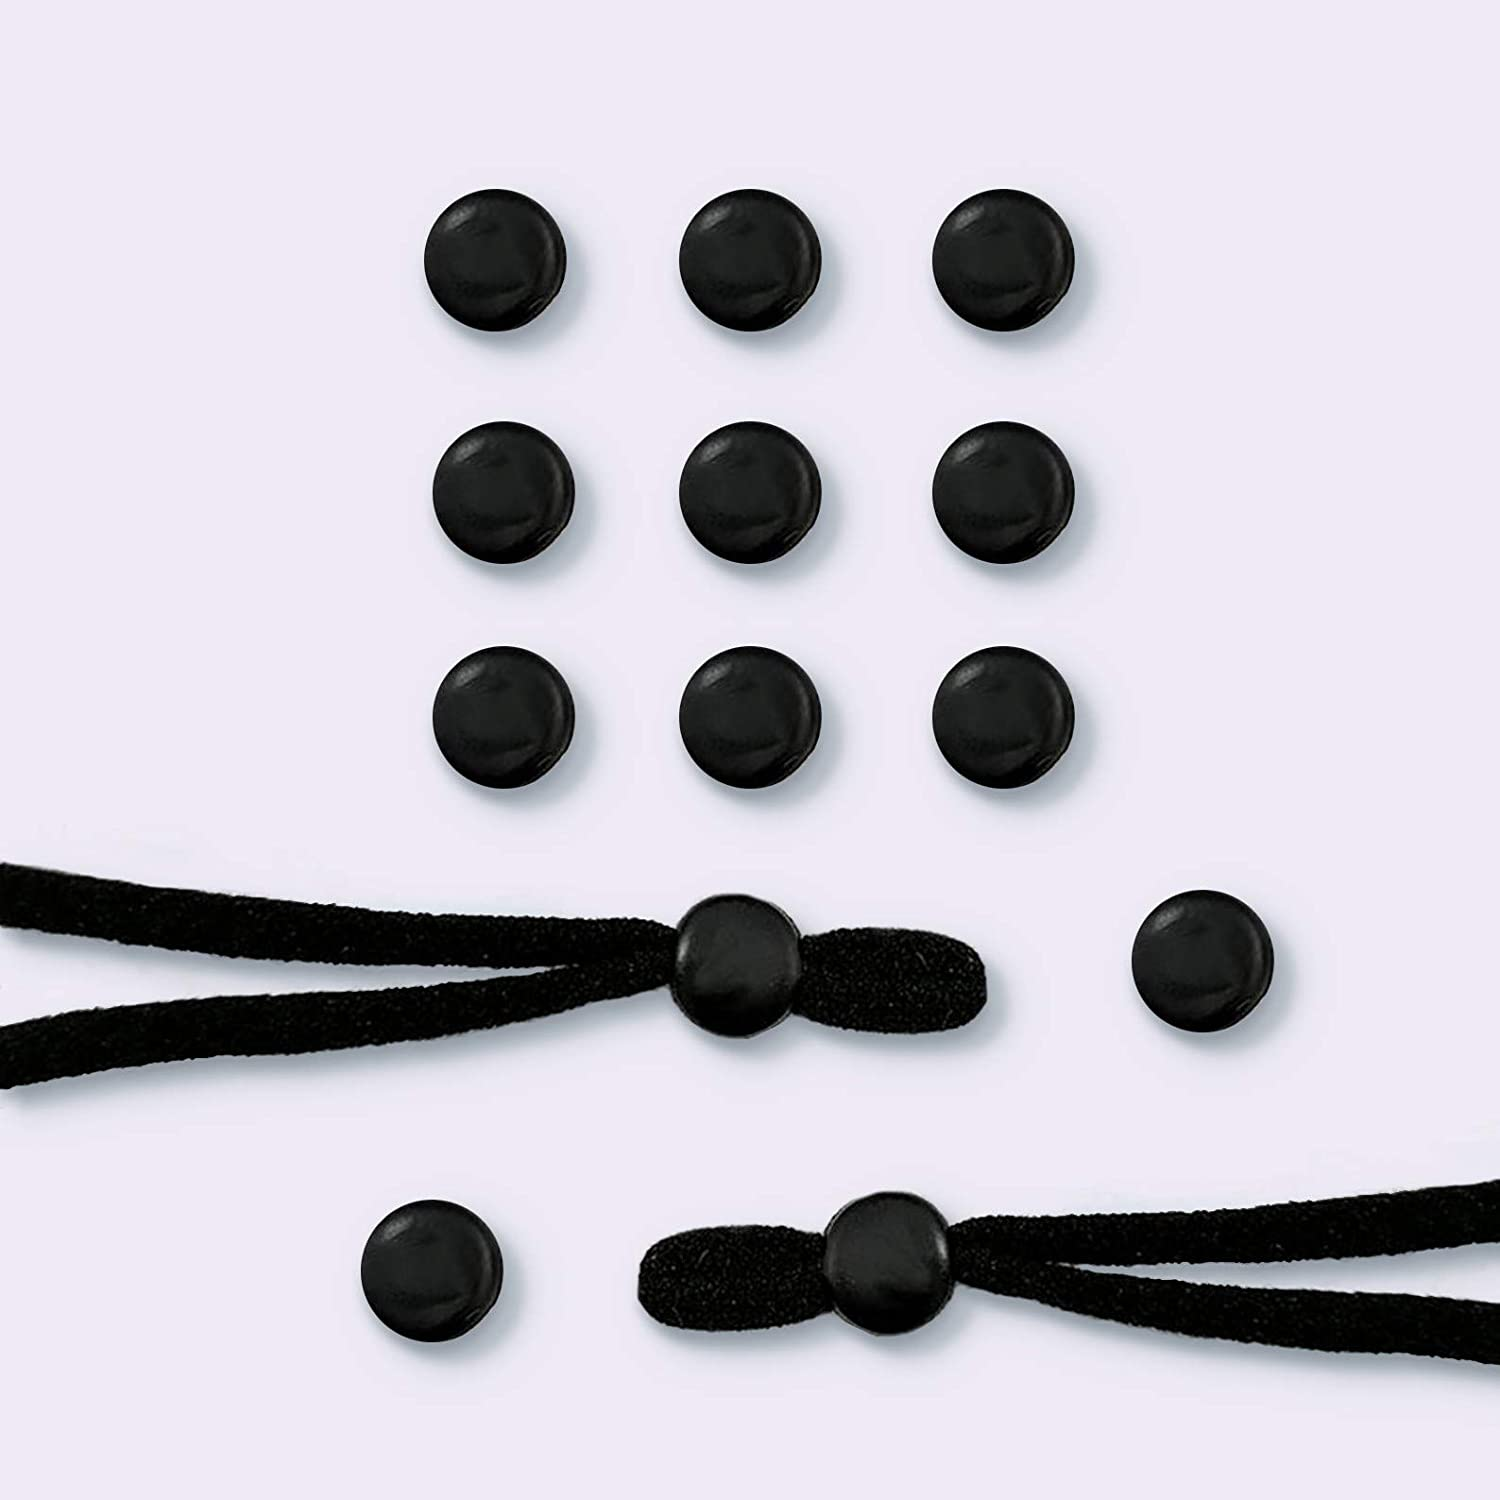 Elastic Cord Lock Silicone Round Toggles for Drawstrings Elastic Cord Straps Adjuster Non Slip Stoppers 100PC (Black)